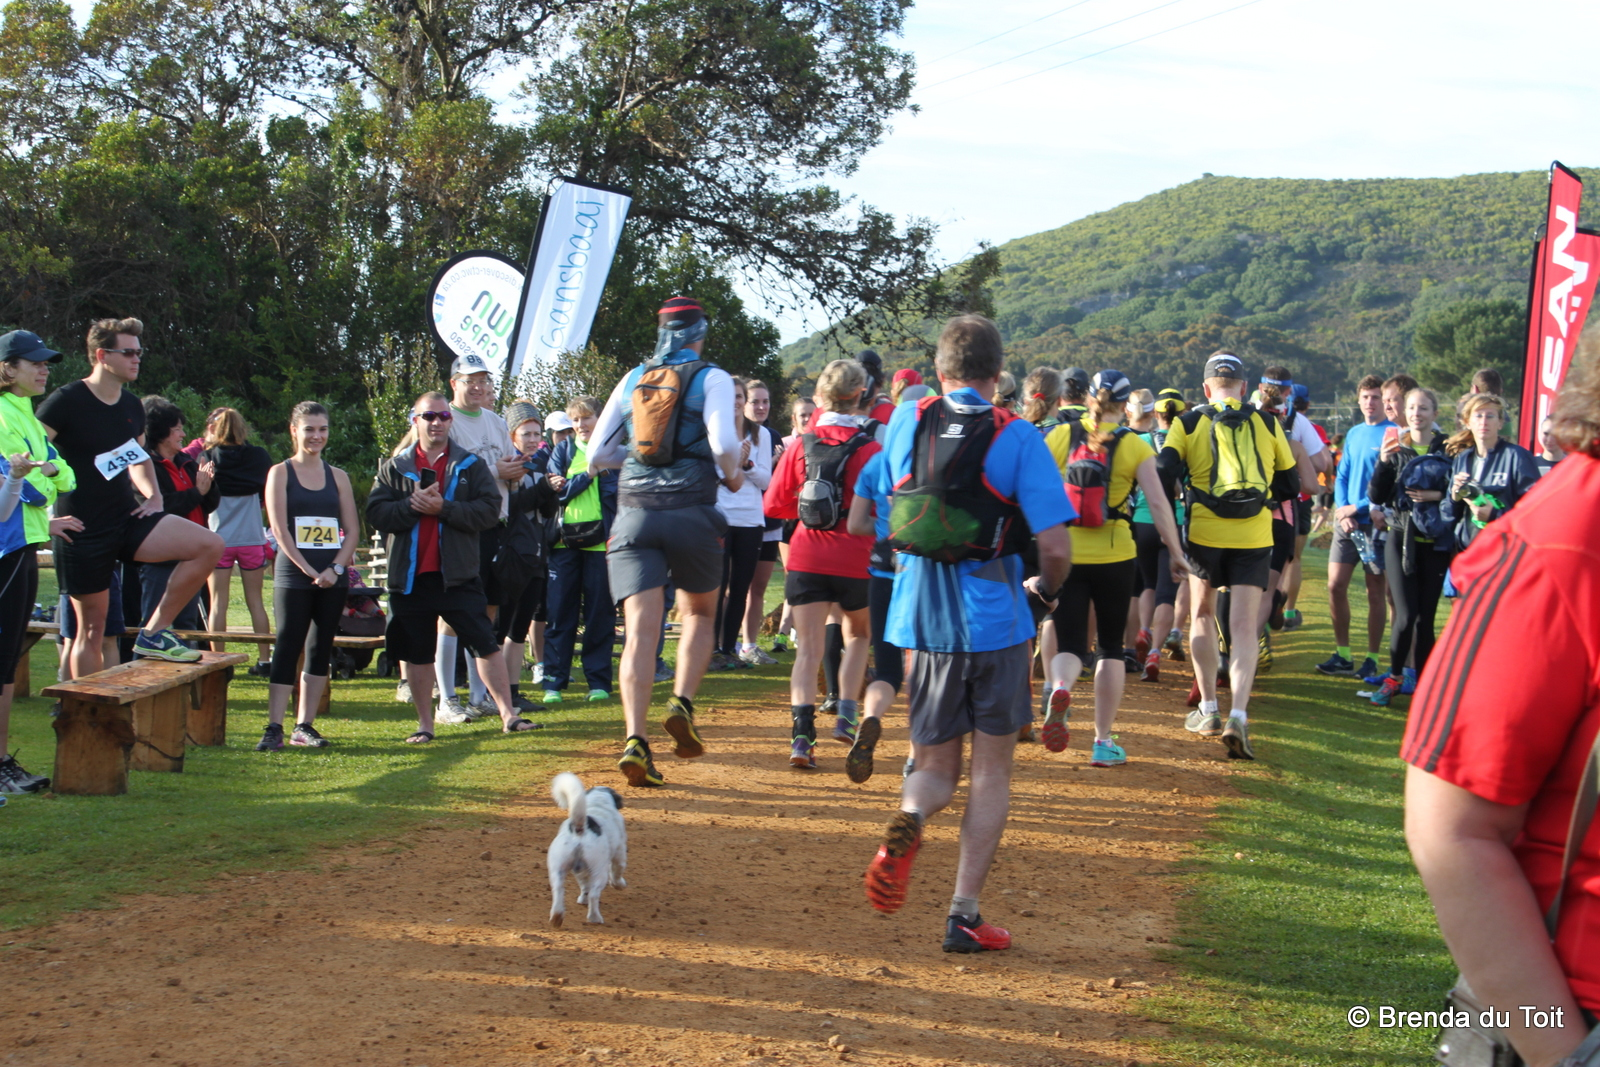 Dog following a group on a fun run whilst the crowds cheer them on